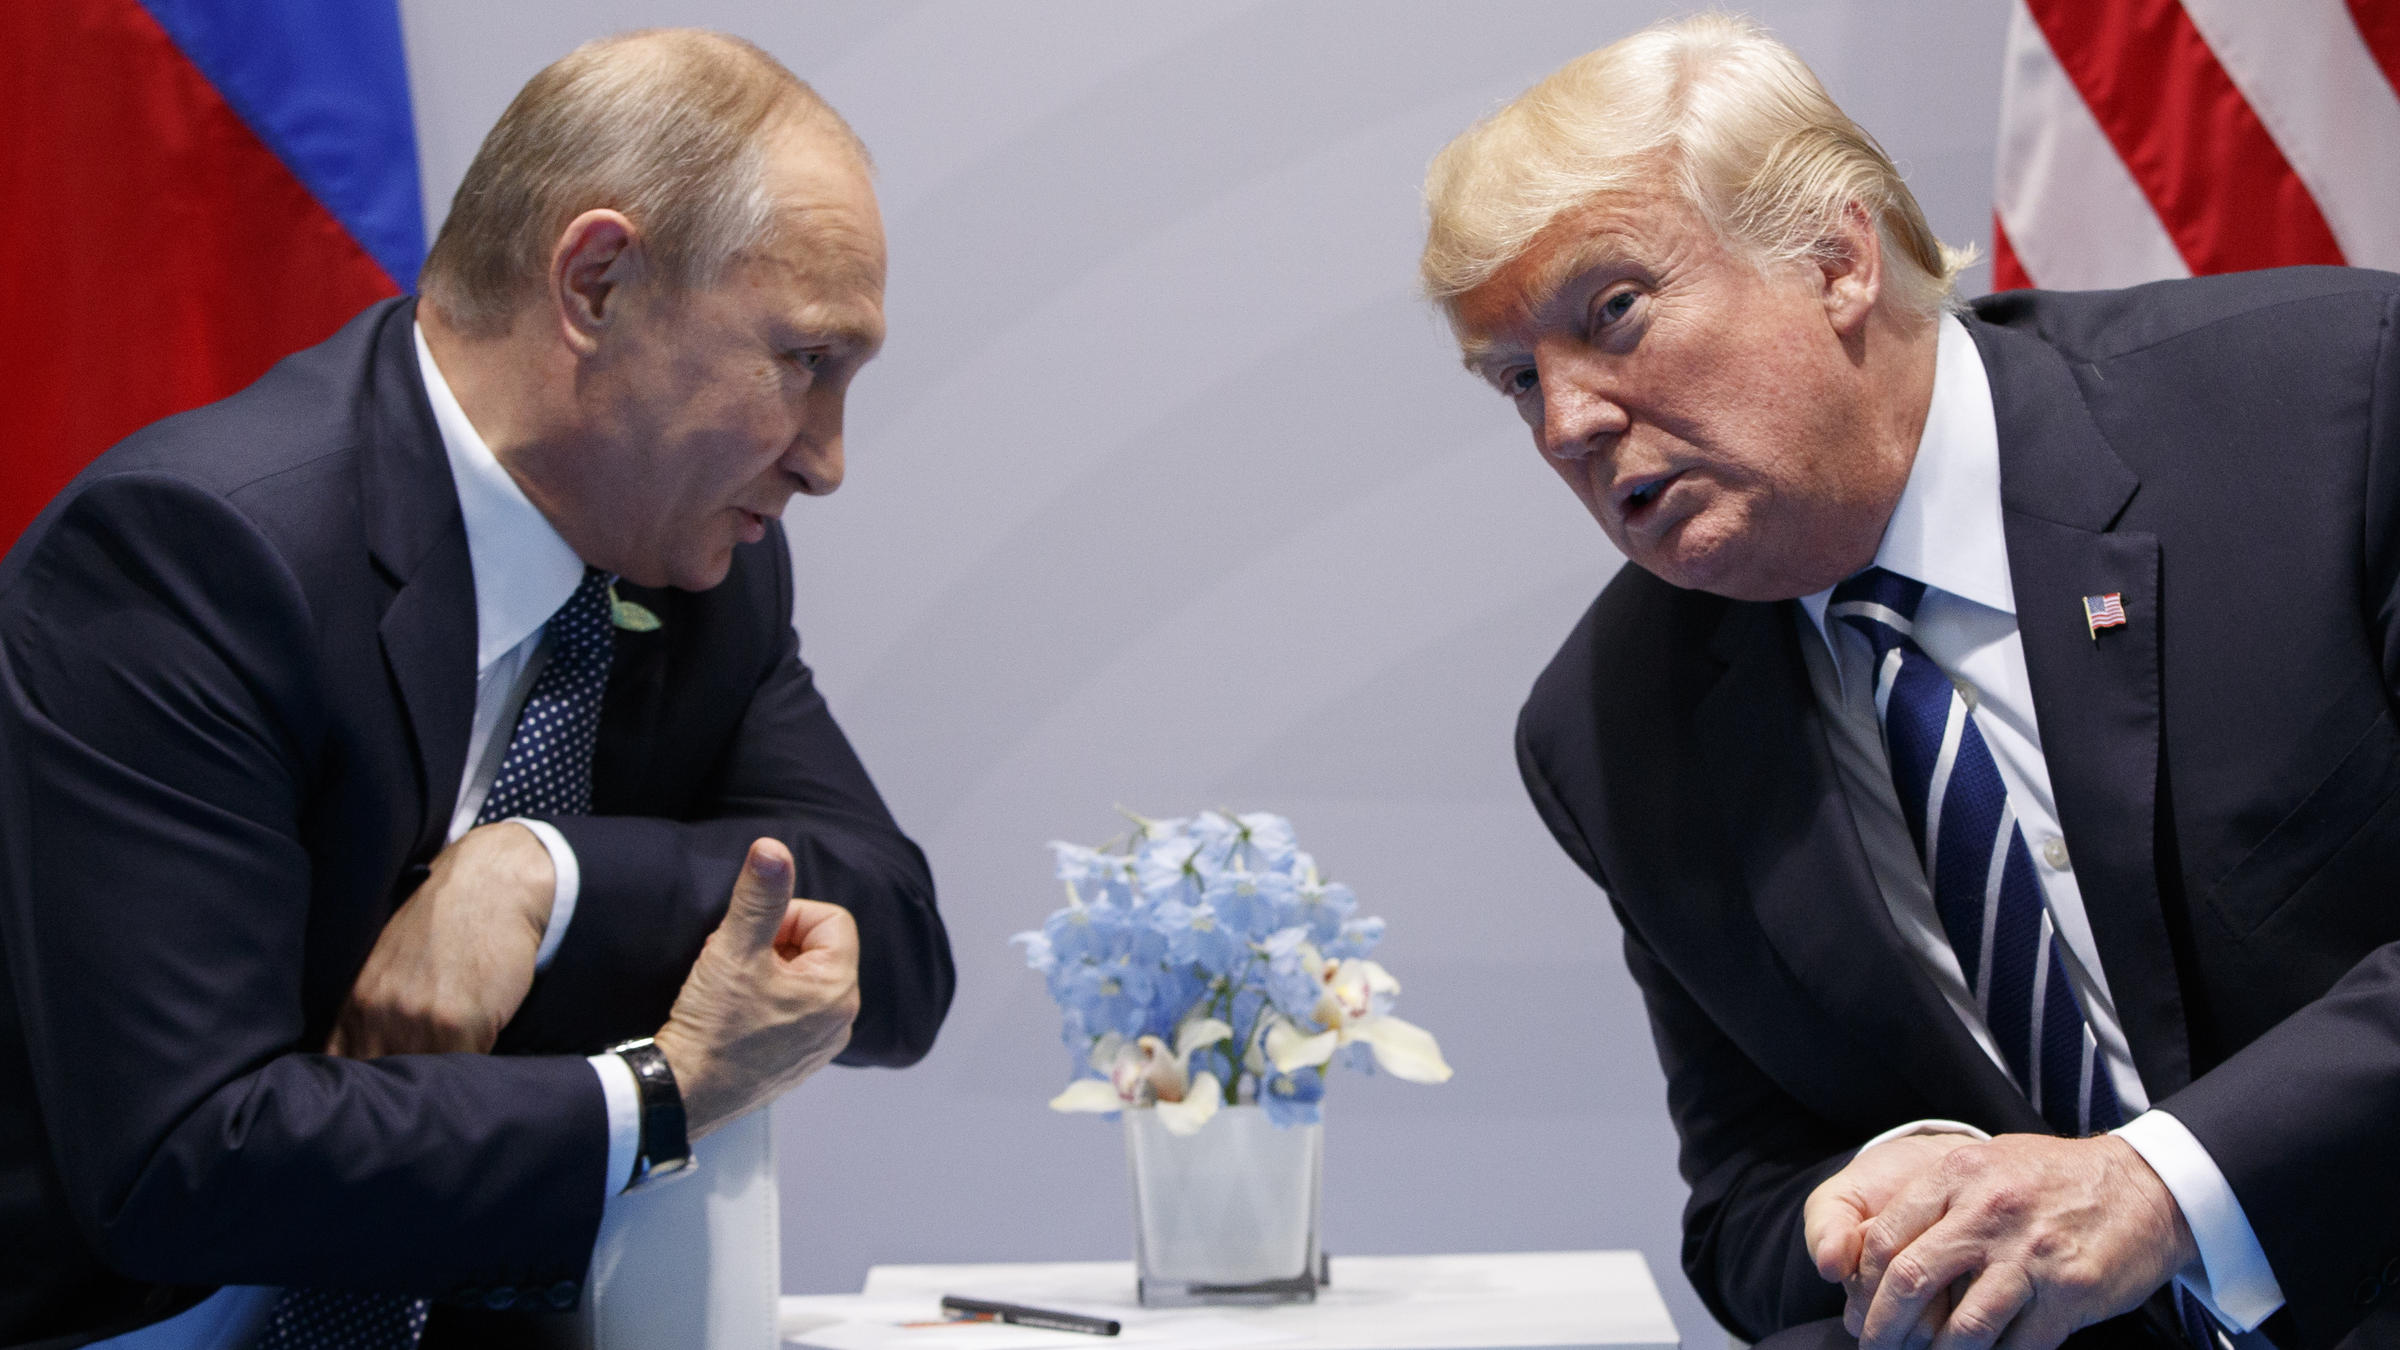 Trump signs sanctions against Russian Federation as punishment for election meddling